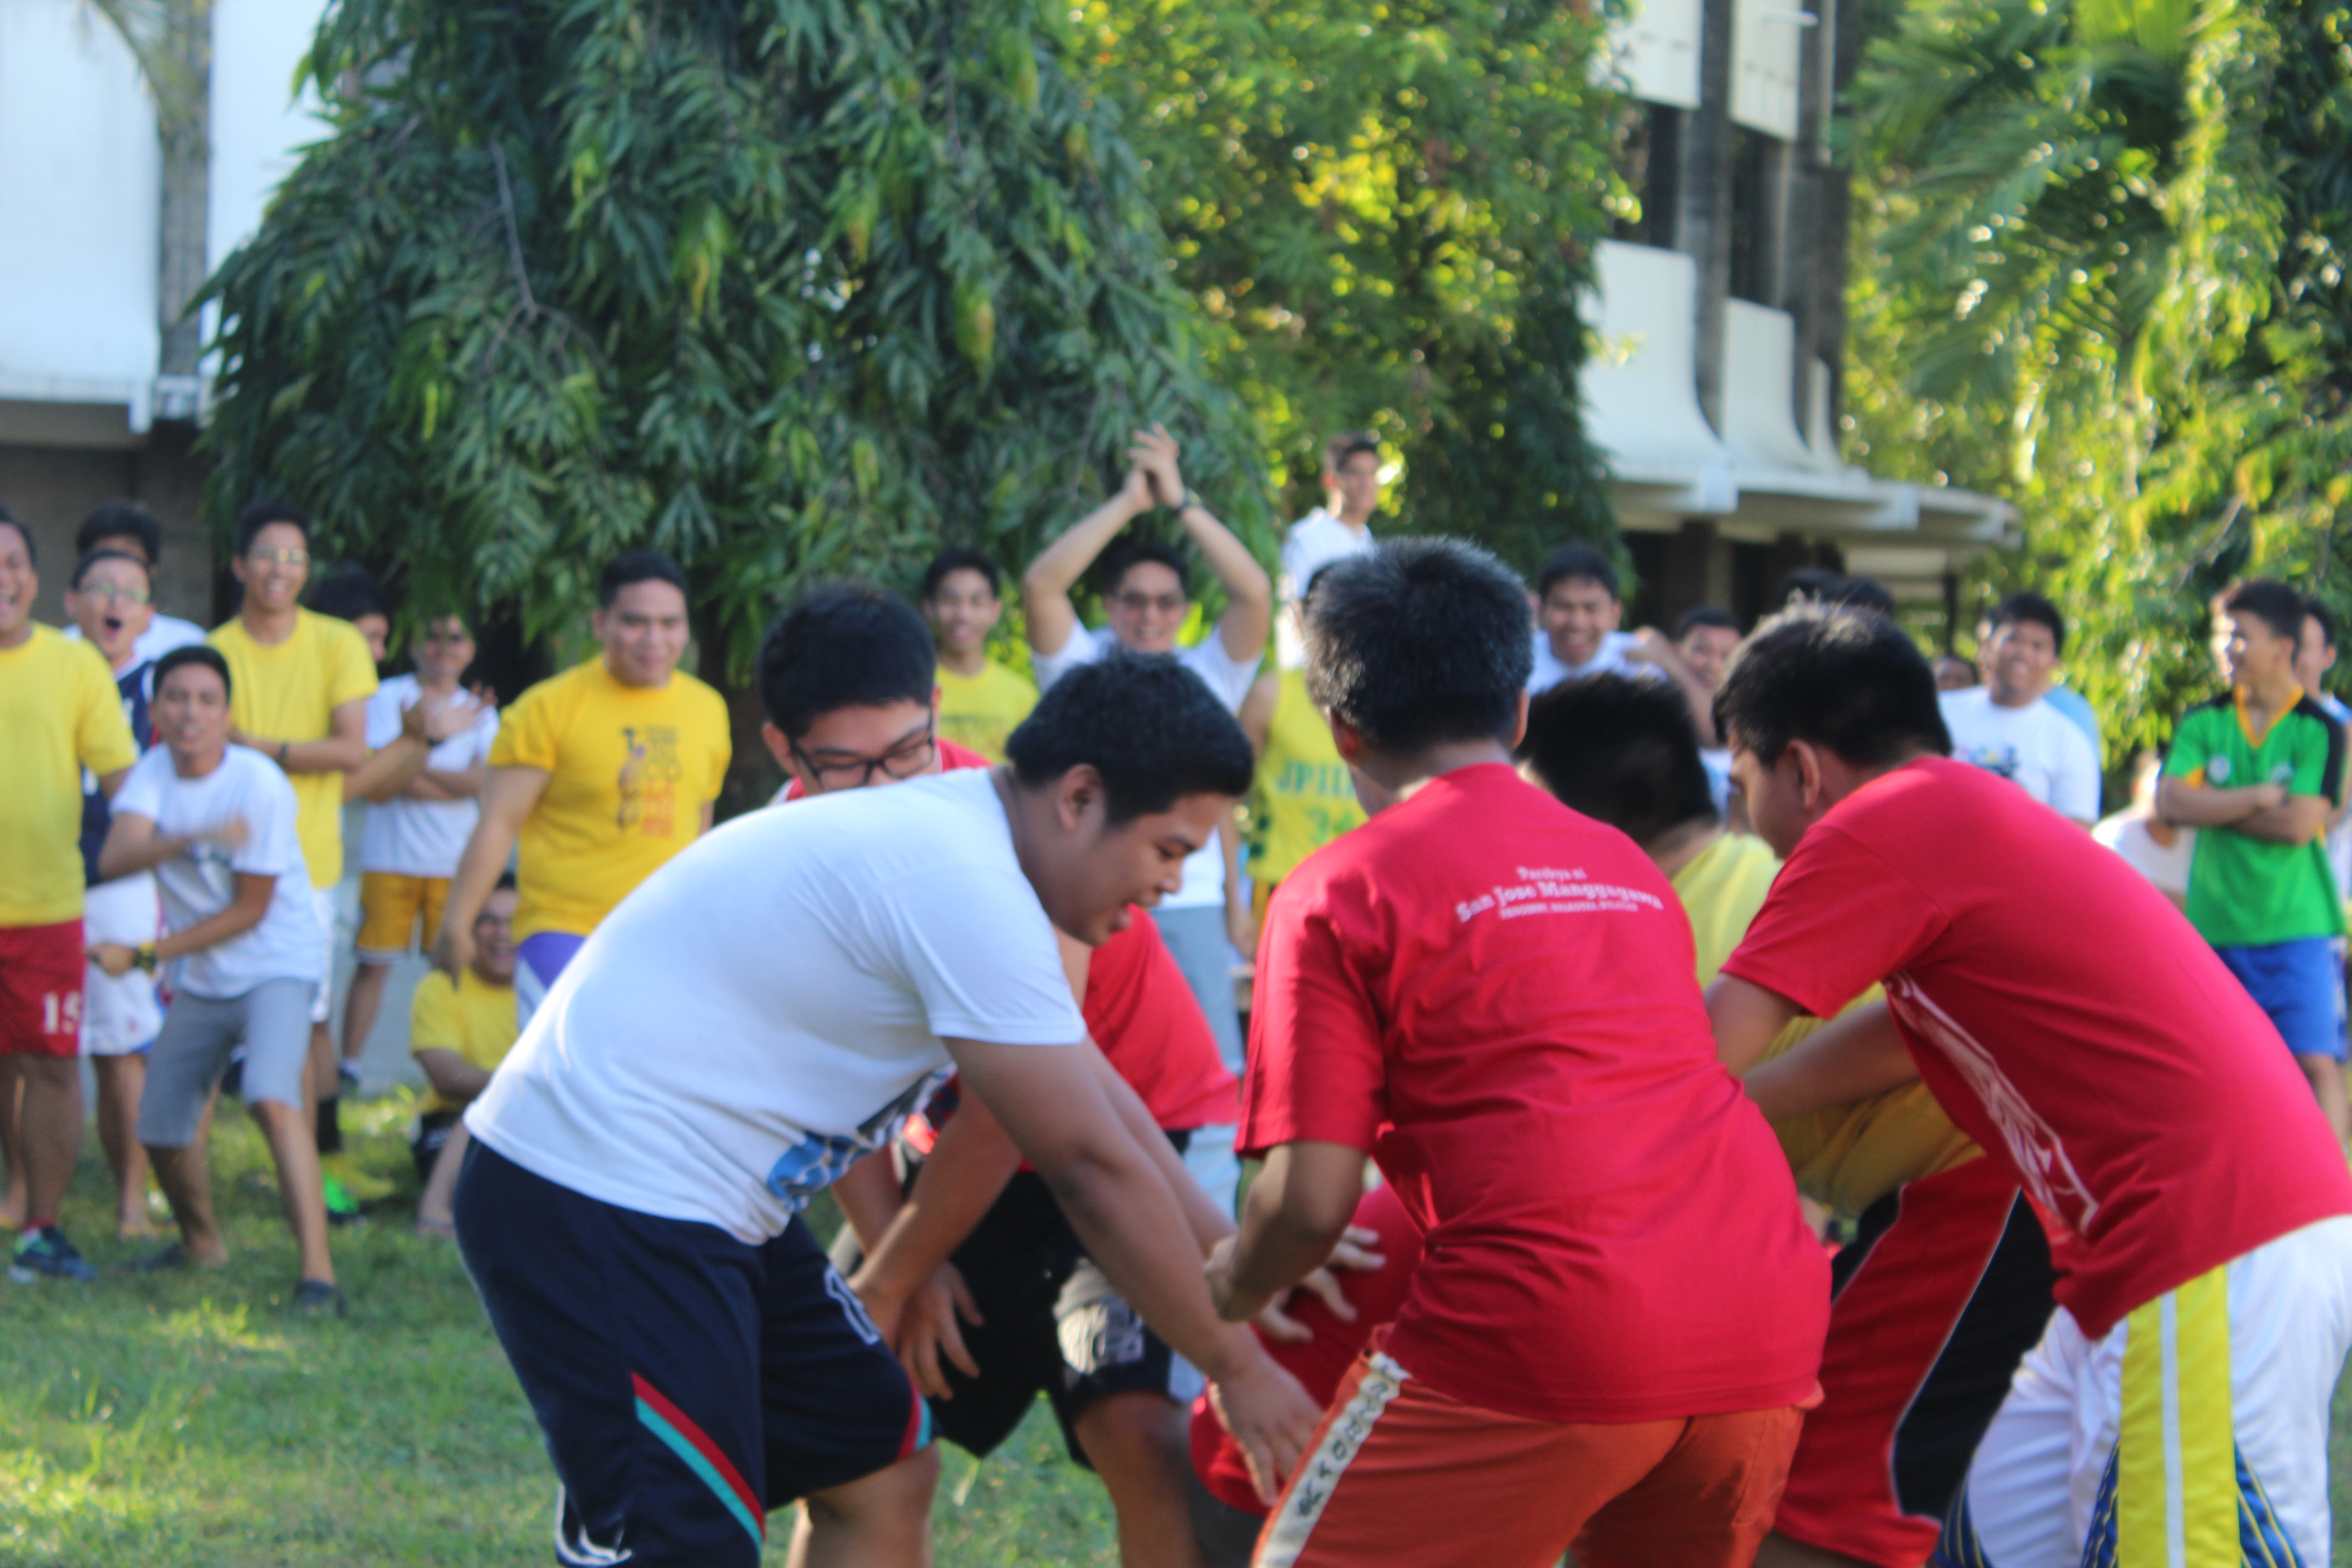 ICMAS engages in a week-long Intramurals